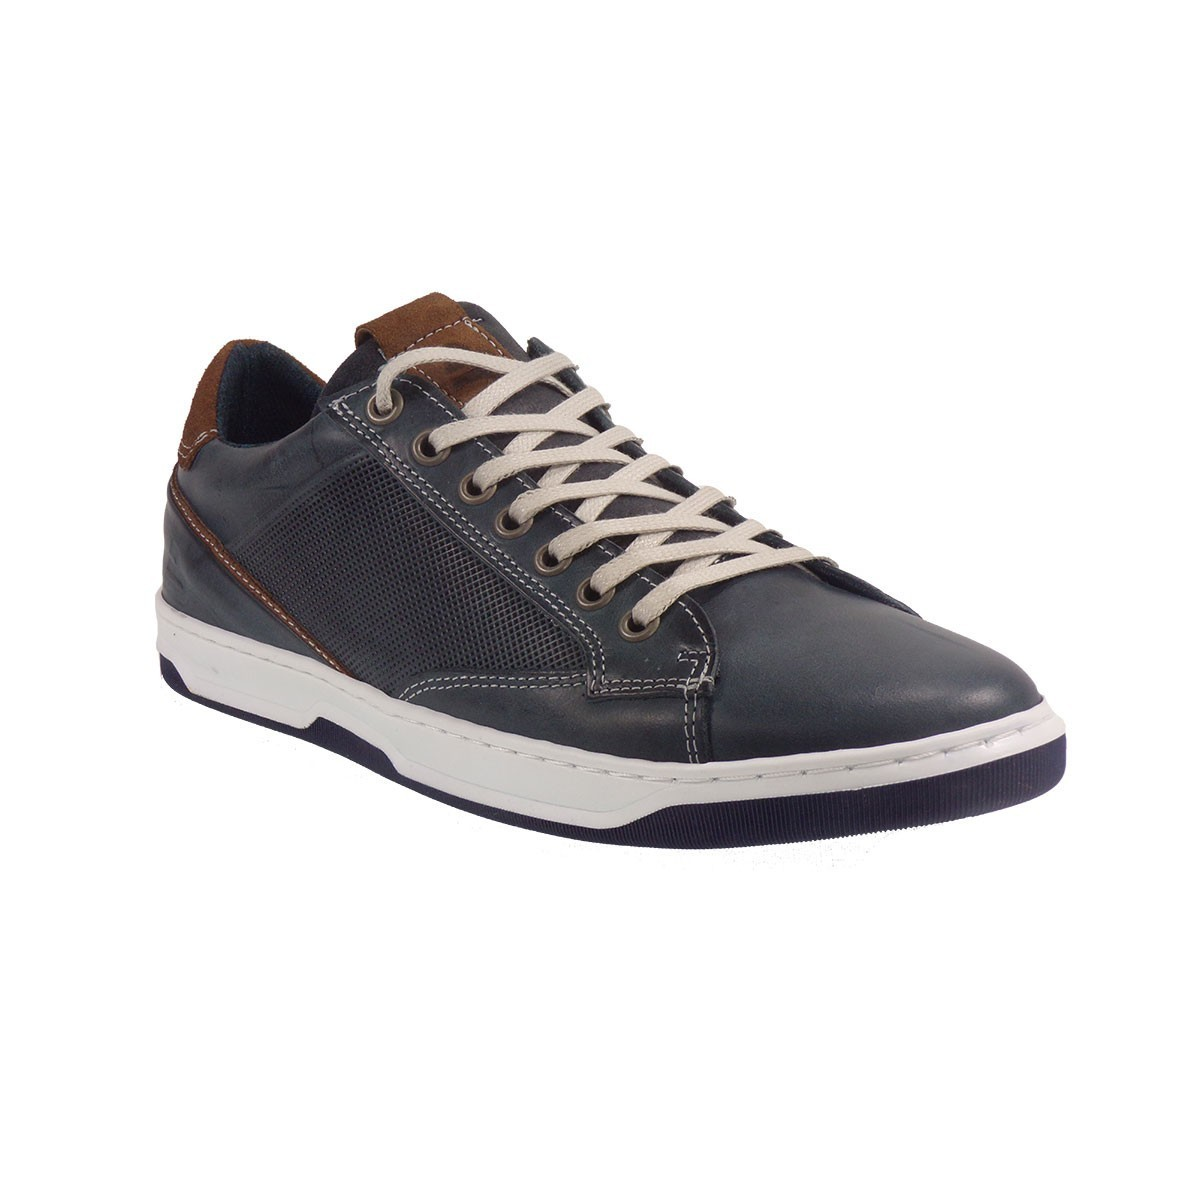 Shoes Antrika Sneakers Mple Papoutsia Bagiotashoes Gr Ba Be Bc Bd Smart